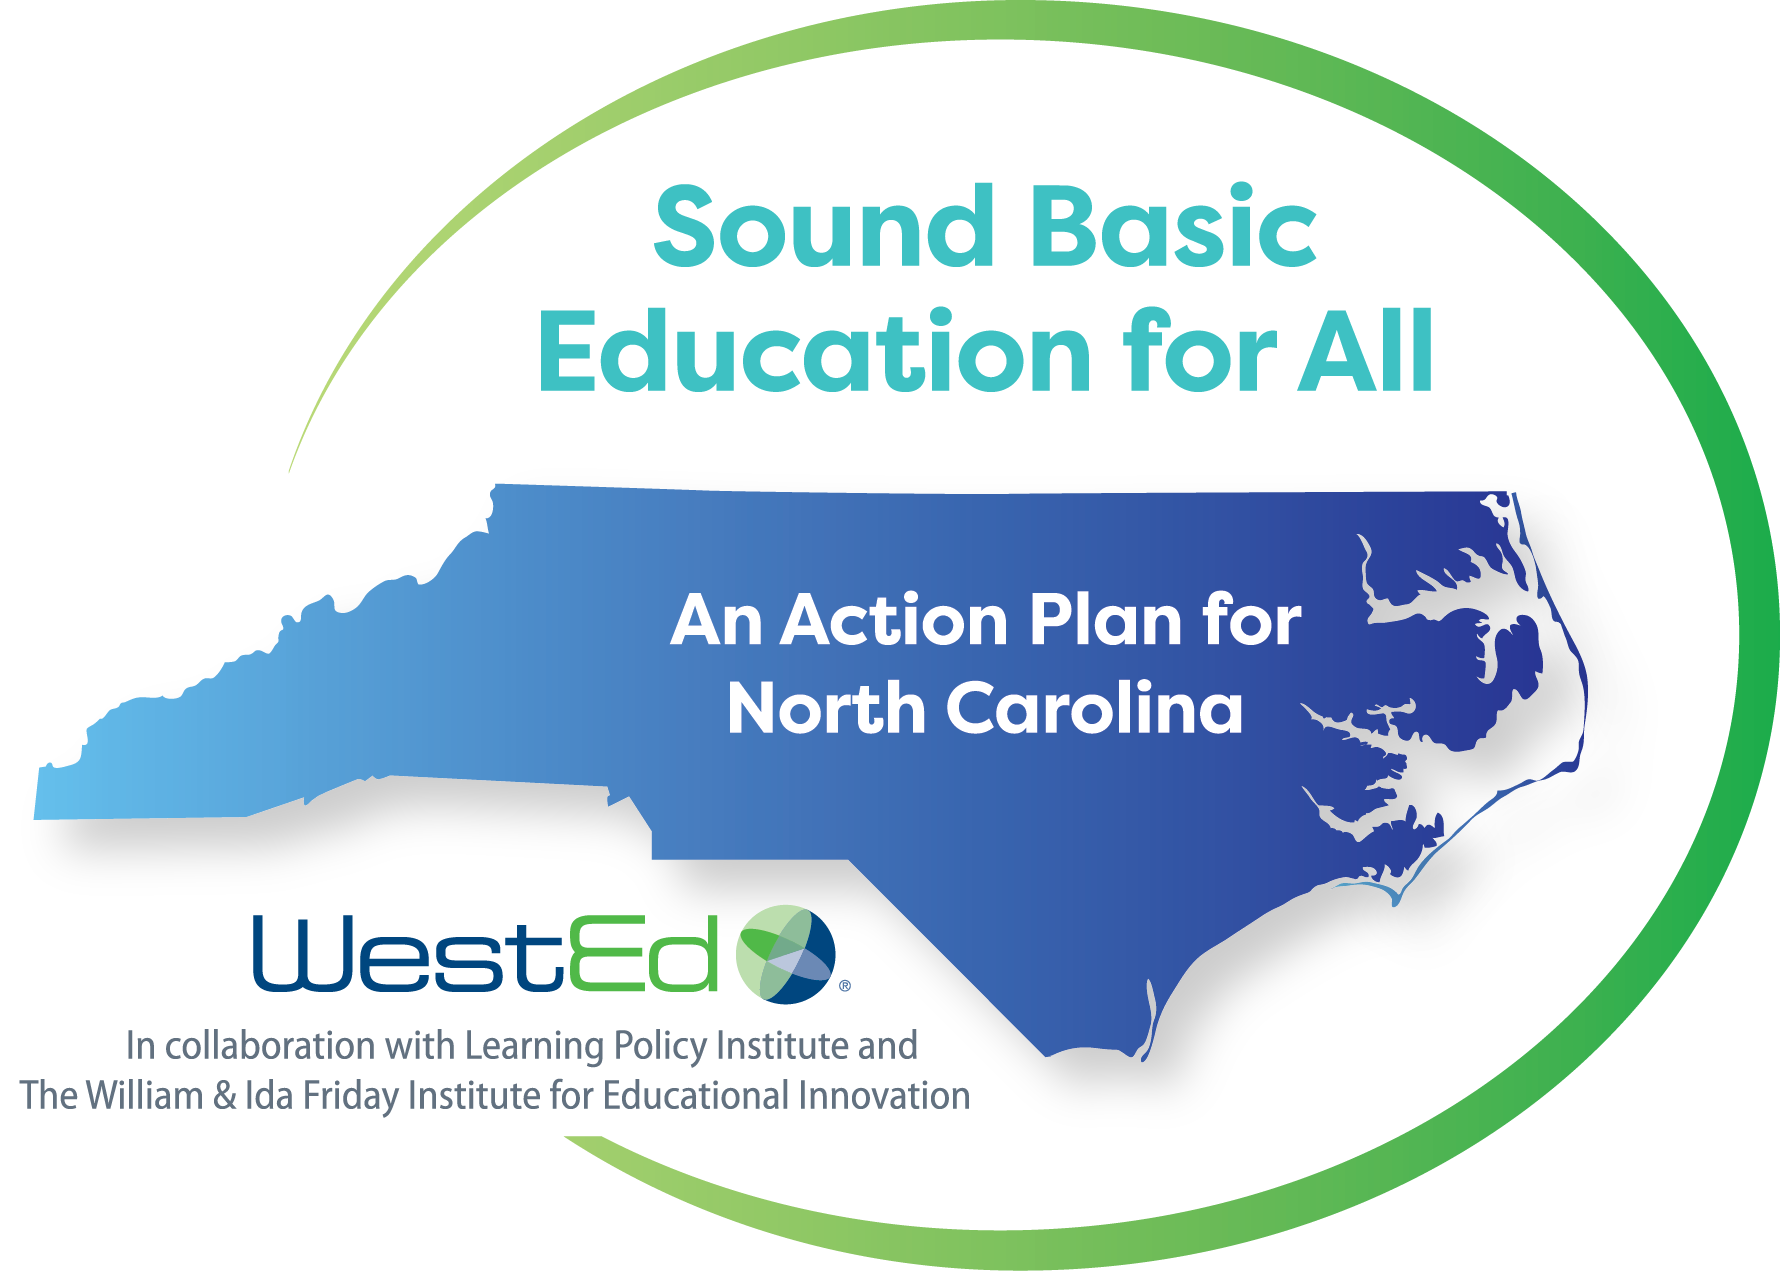 Sound Basic Education for All; An Action Plan for North Carolina